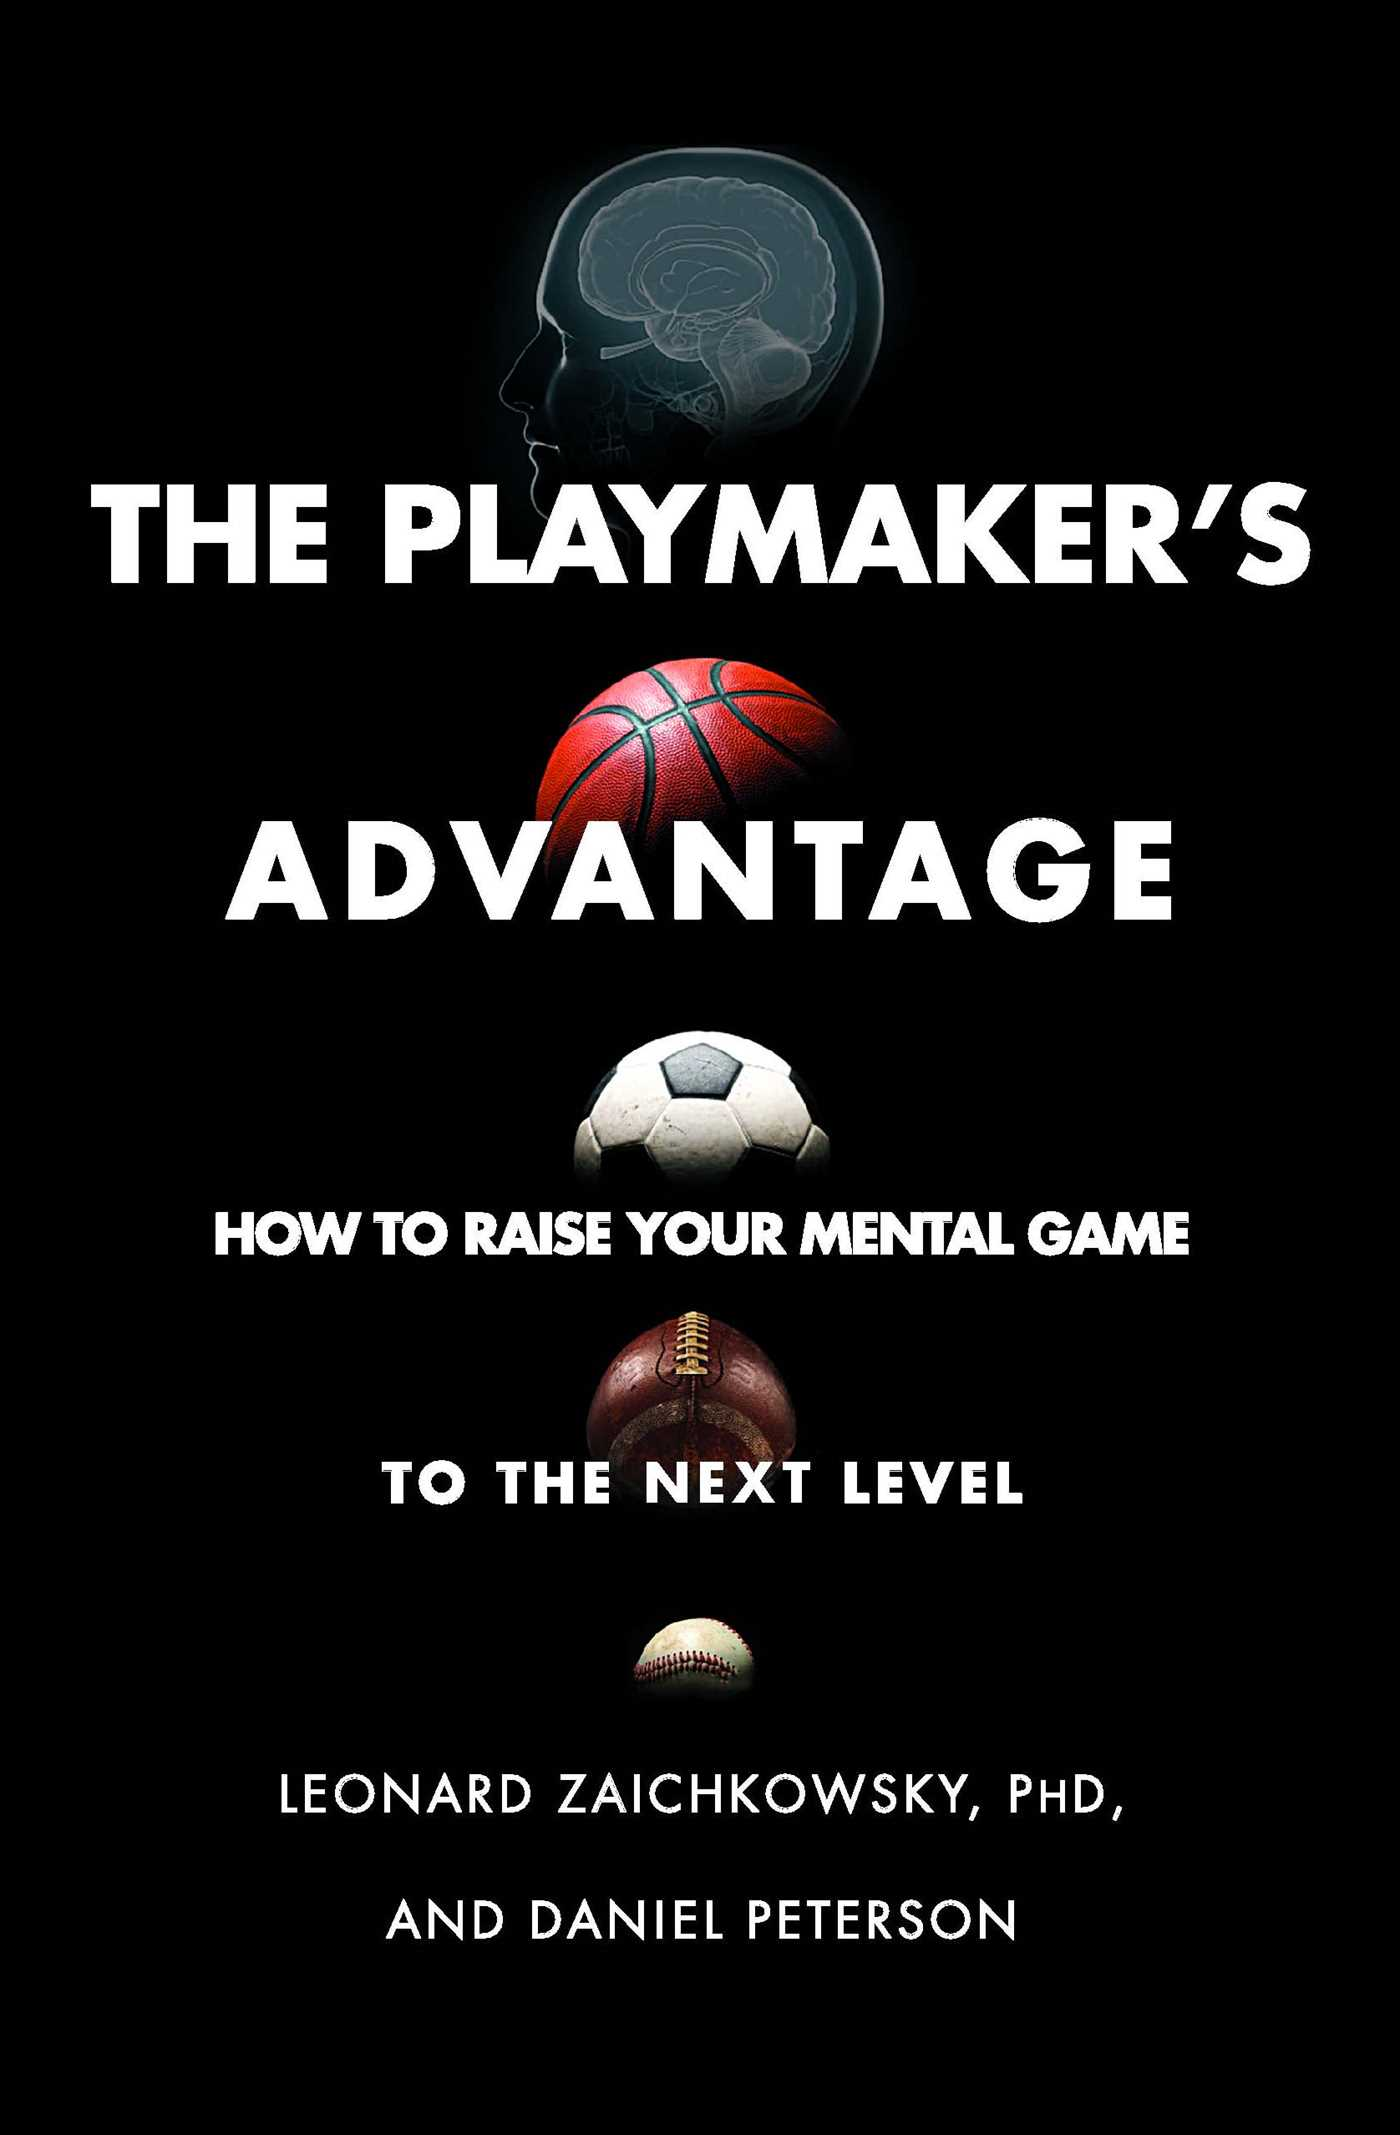 The playmakers advantage 9781501181887 hr